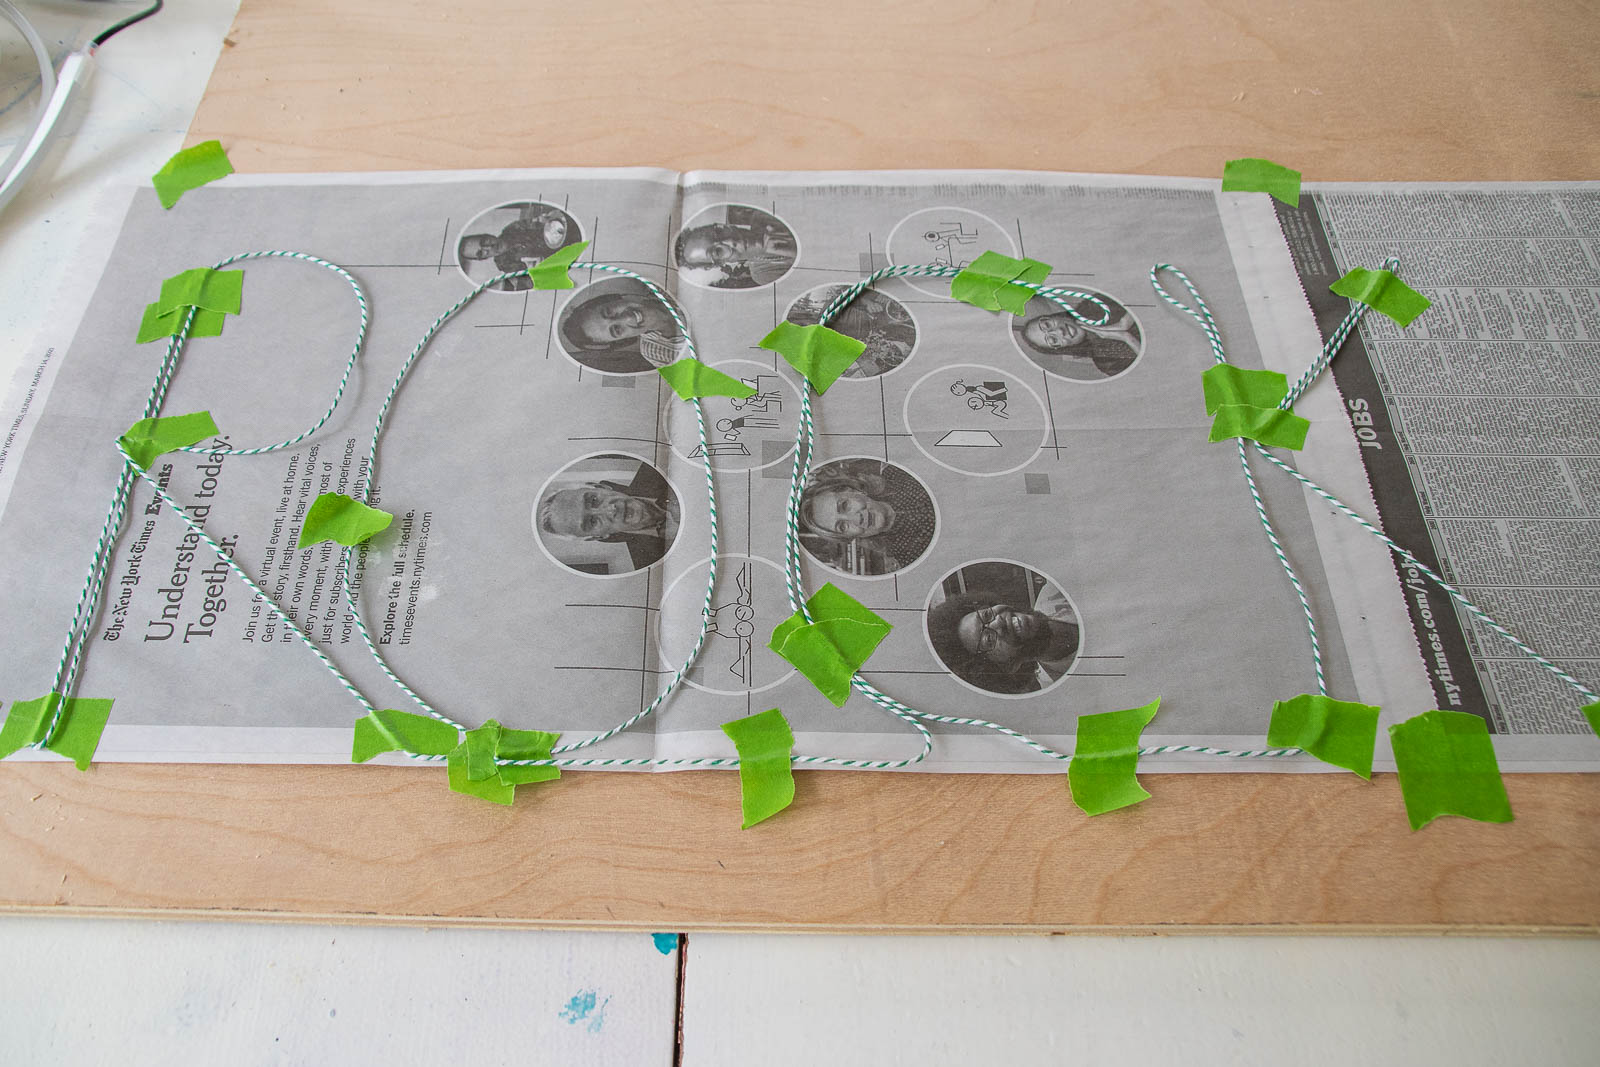 plan out design with twine first